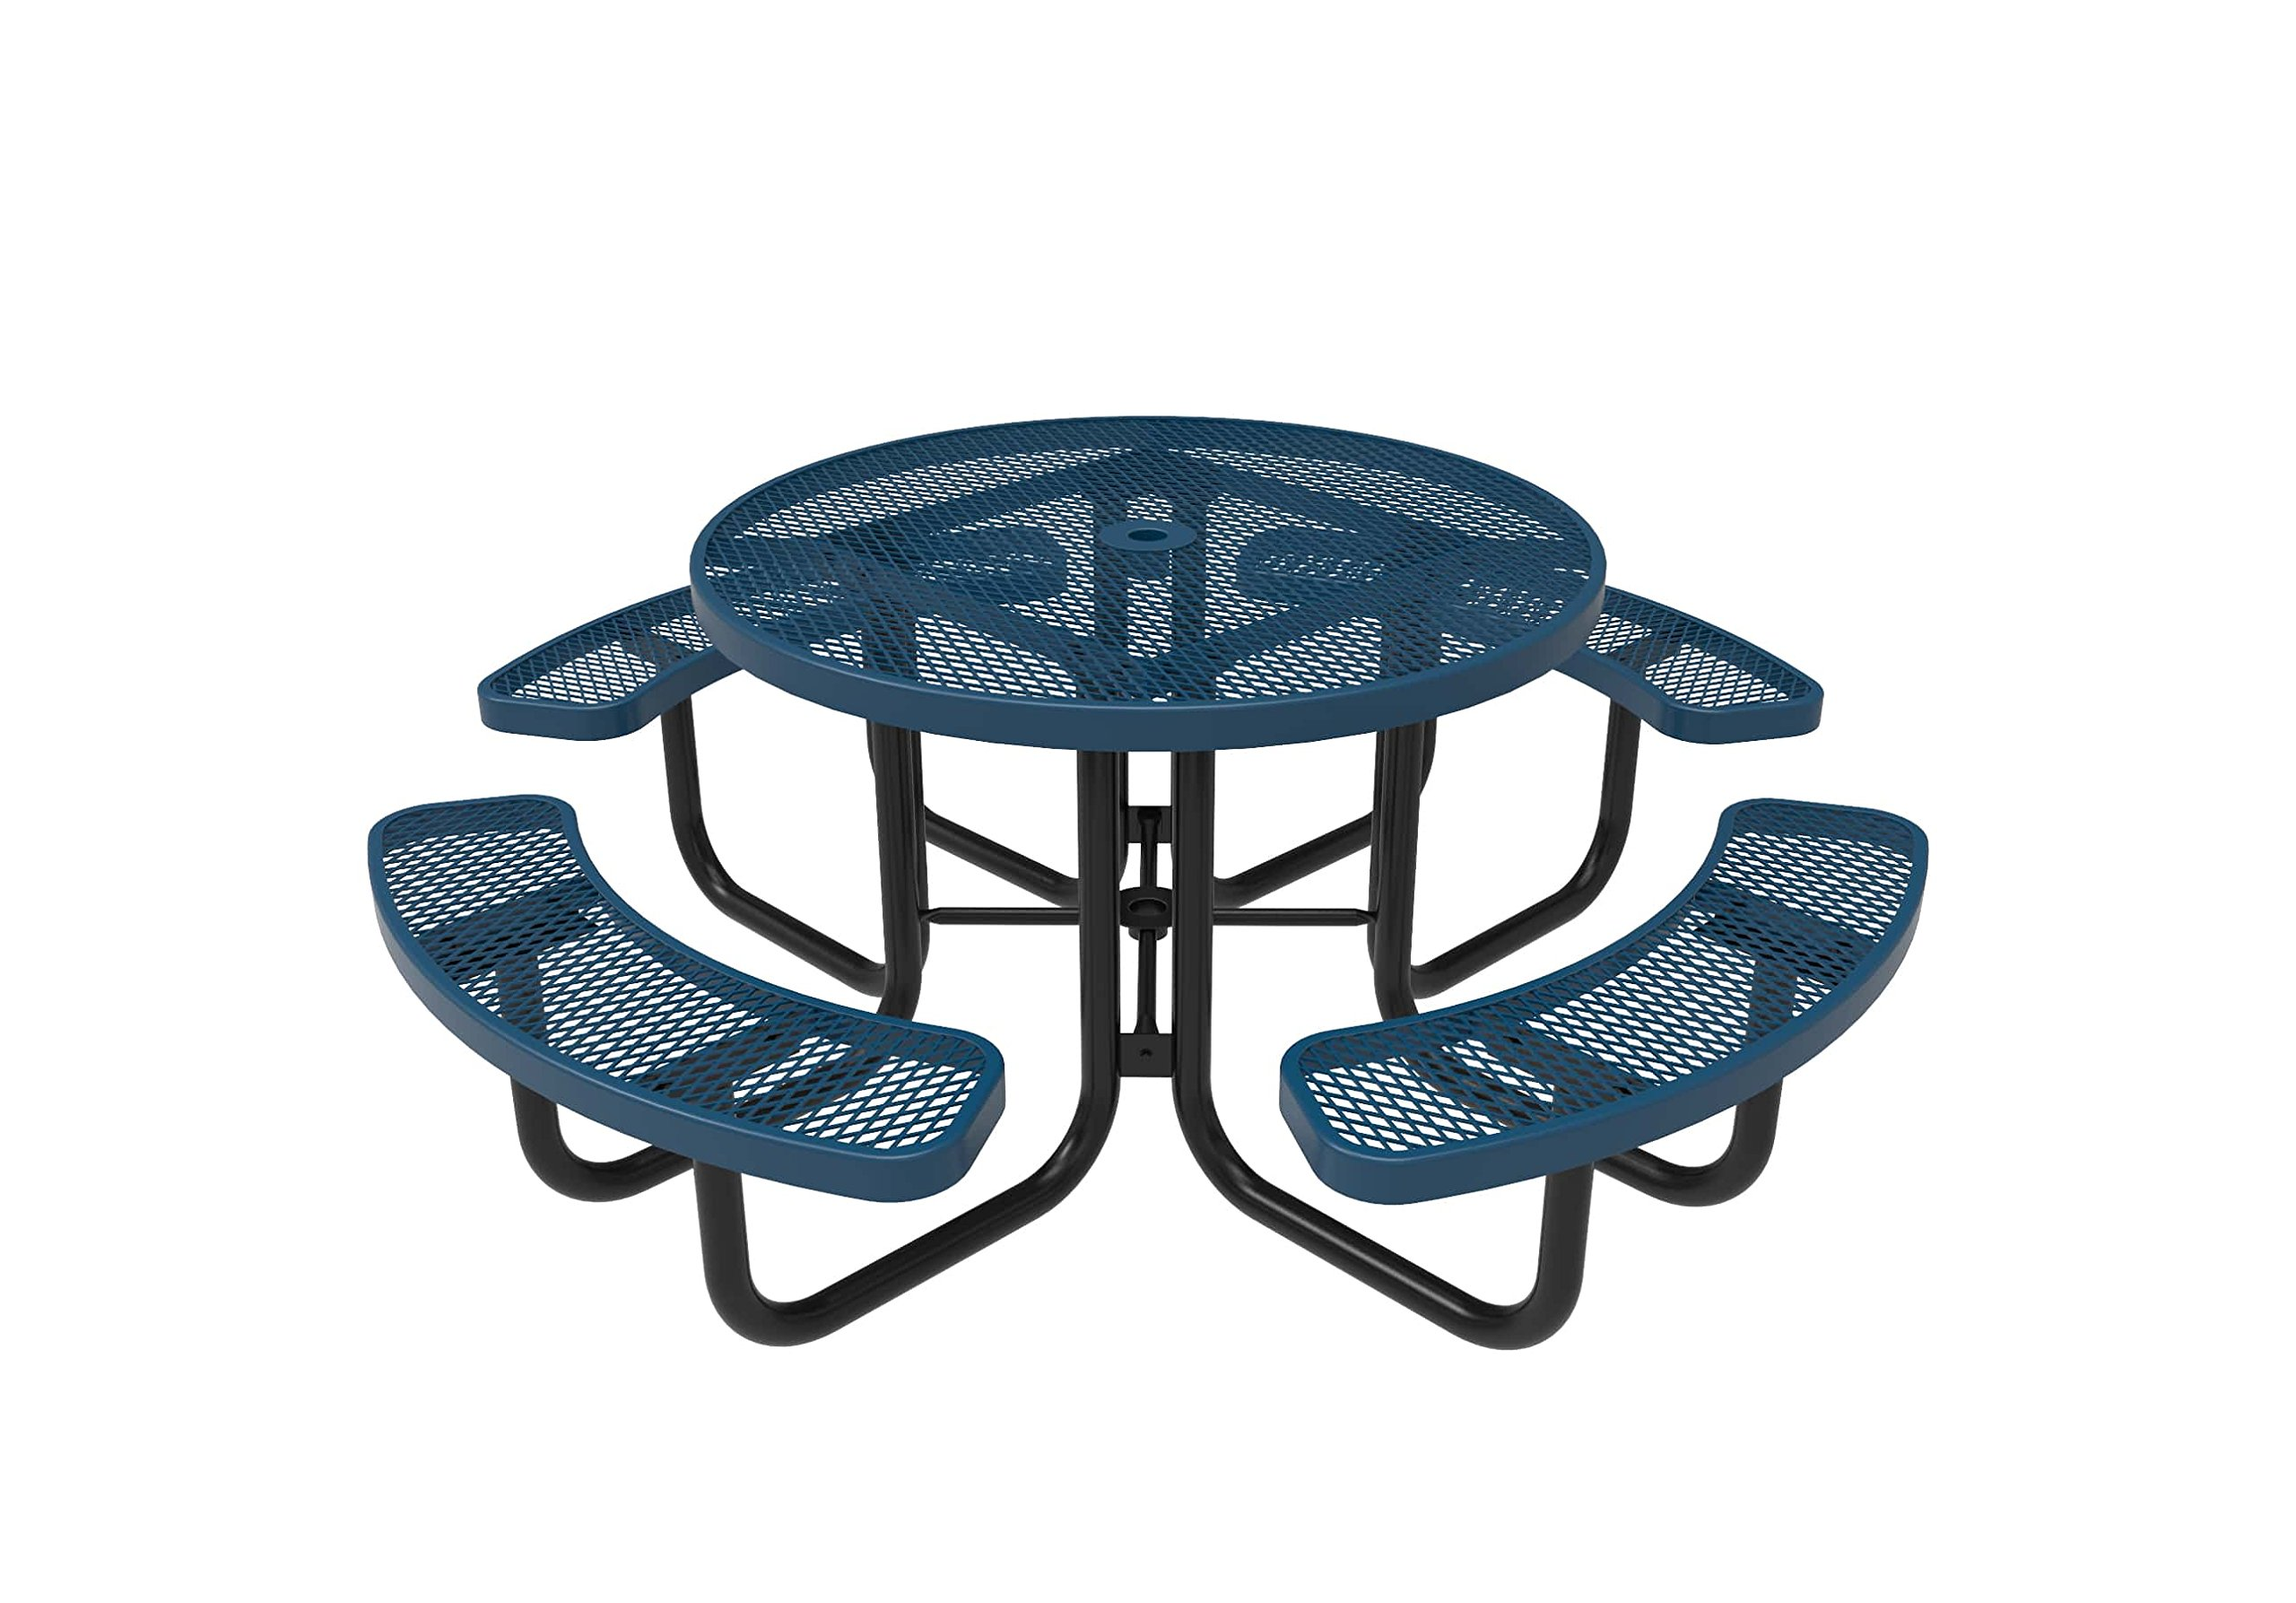 Coated Outdoor Furniture TRD-LBL Top Round Portable Picnic Table, 46-Inch, Light Blue by CoatedOutdoorFurniture